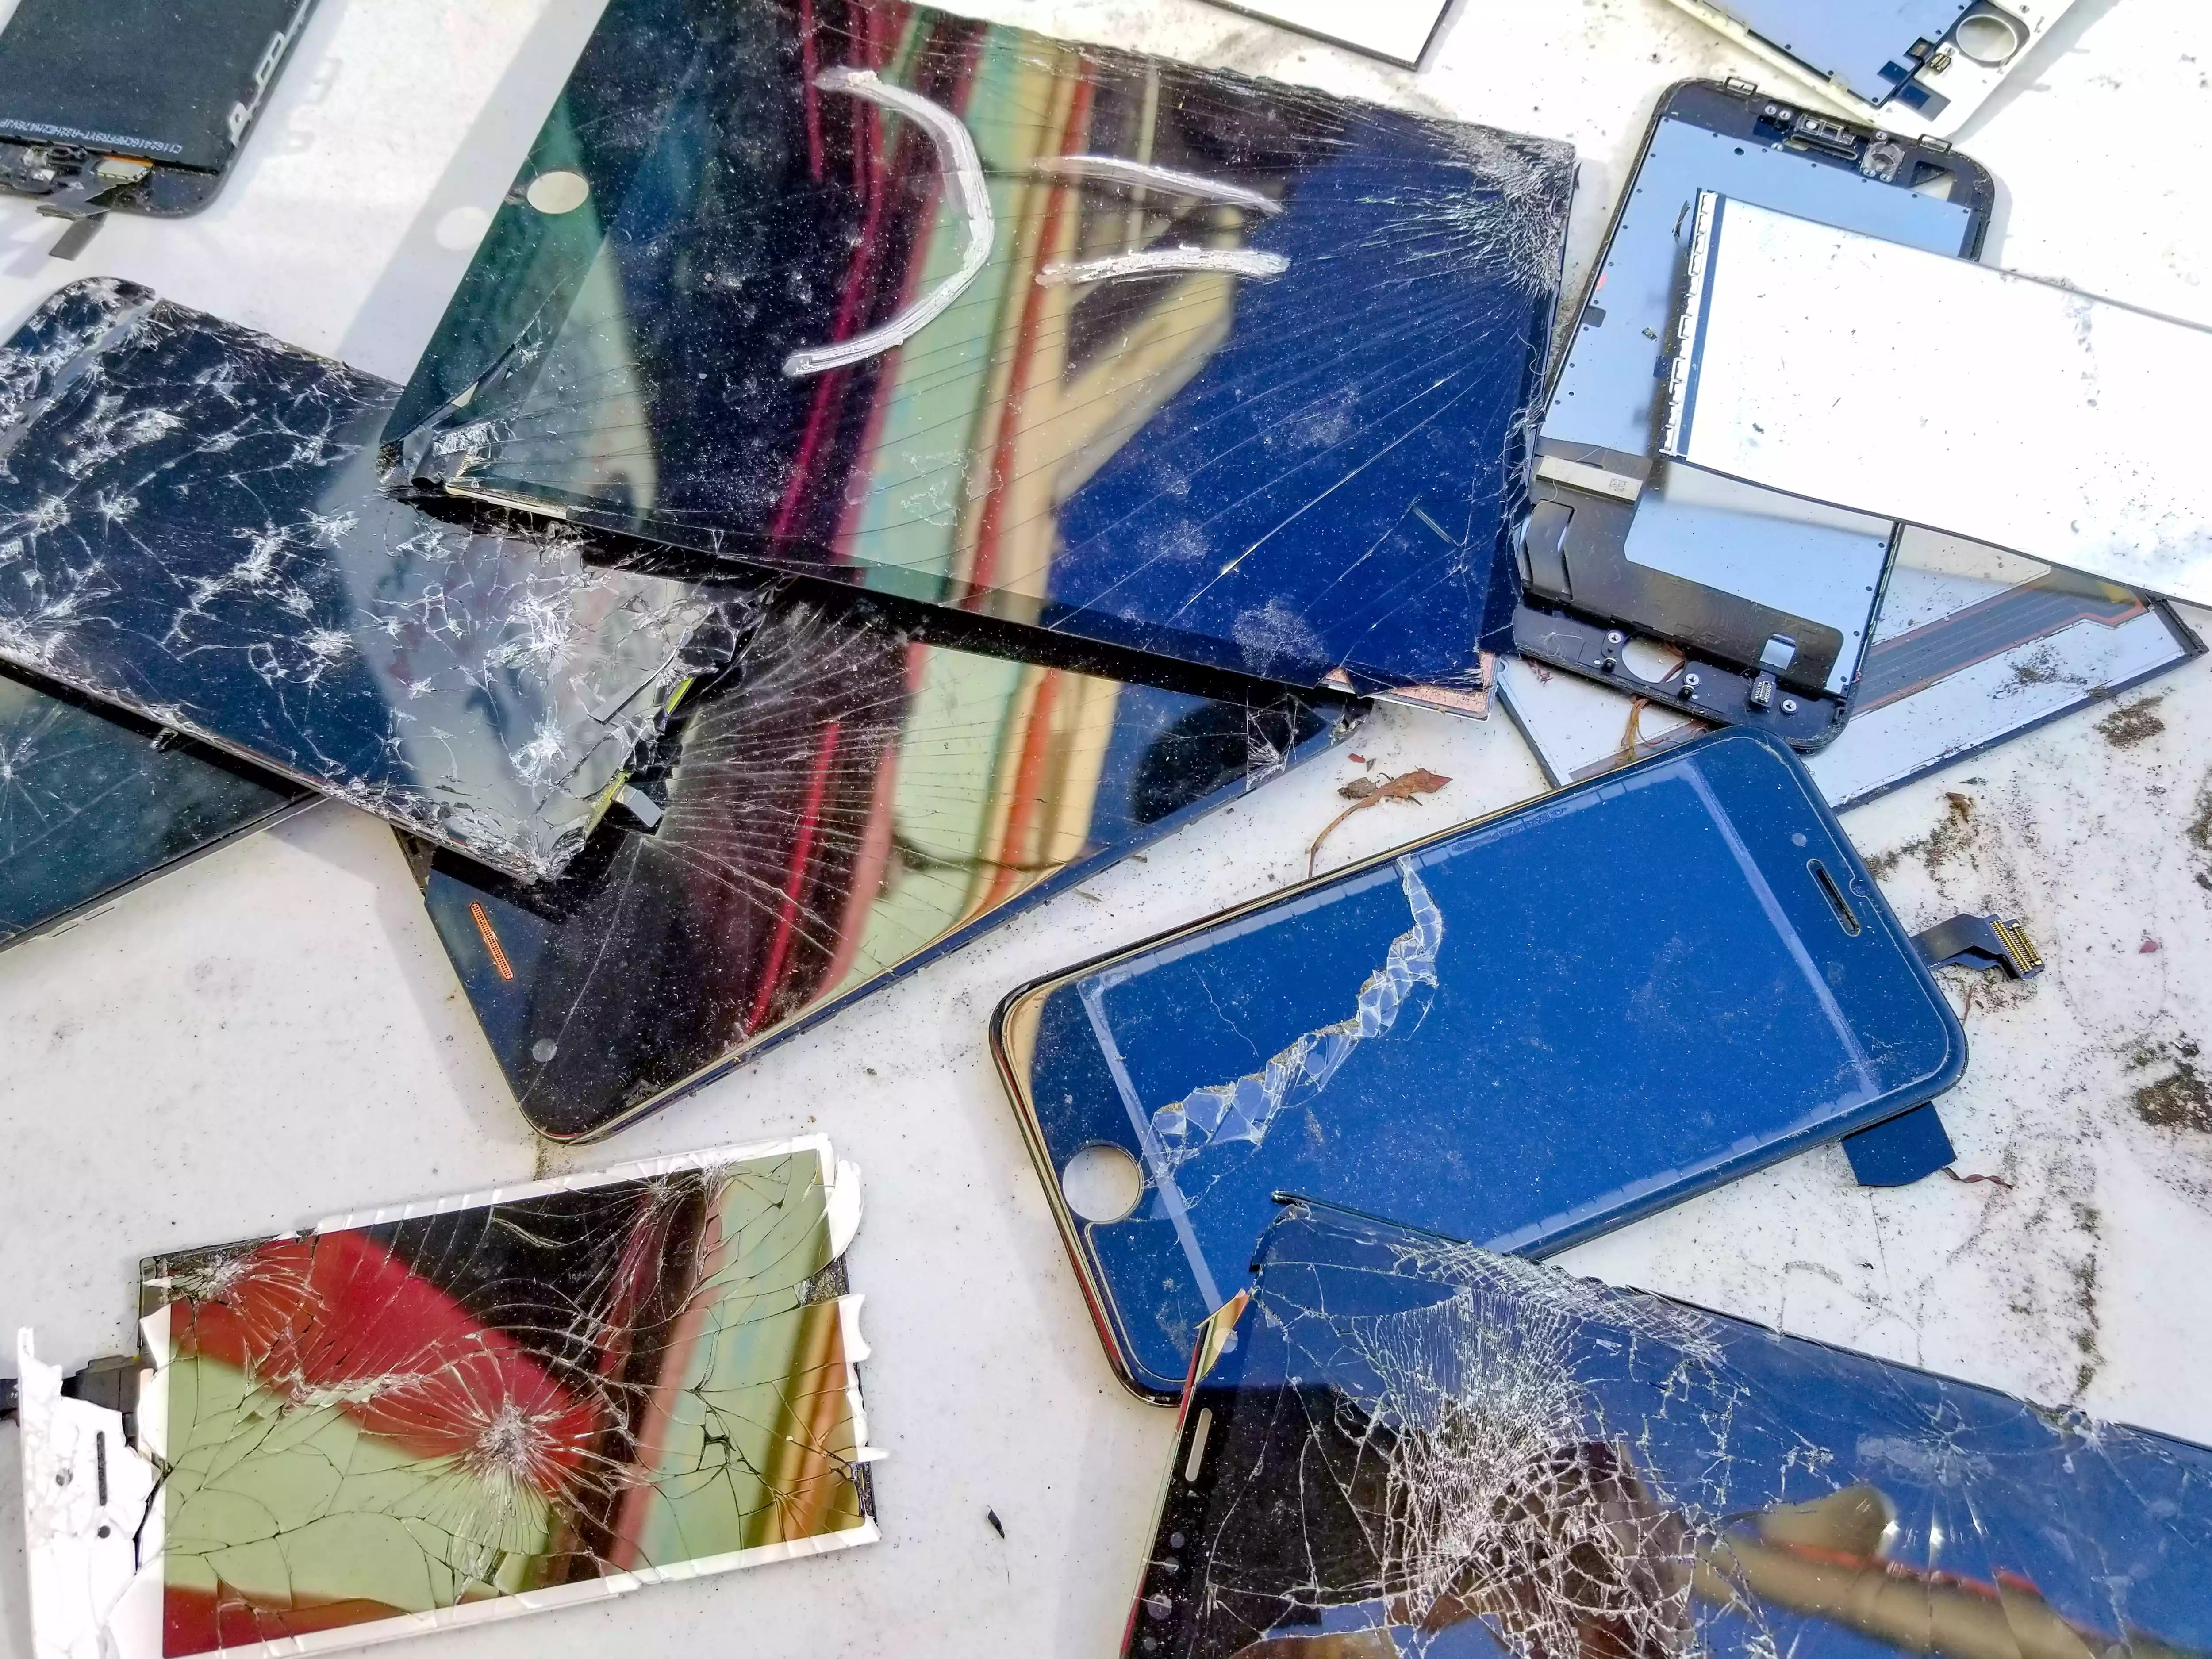 Several broken smartphones and tablets with cracked screens on a table.